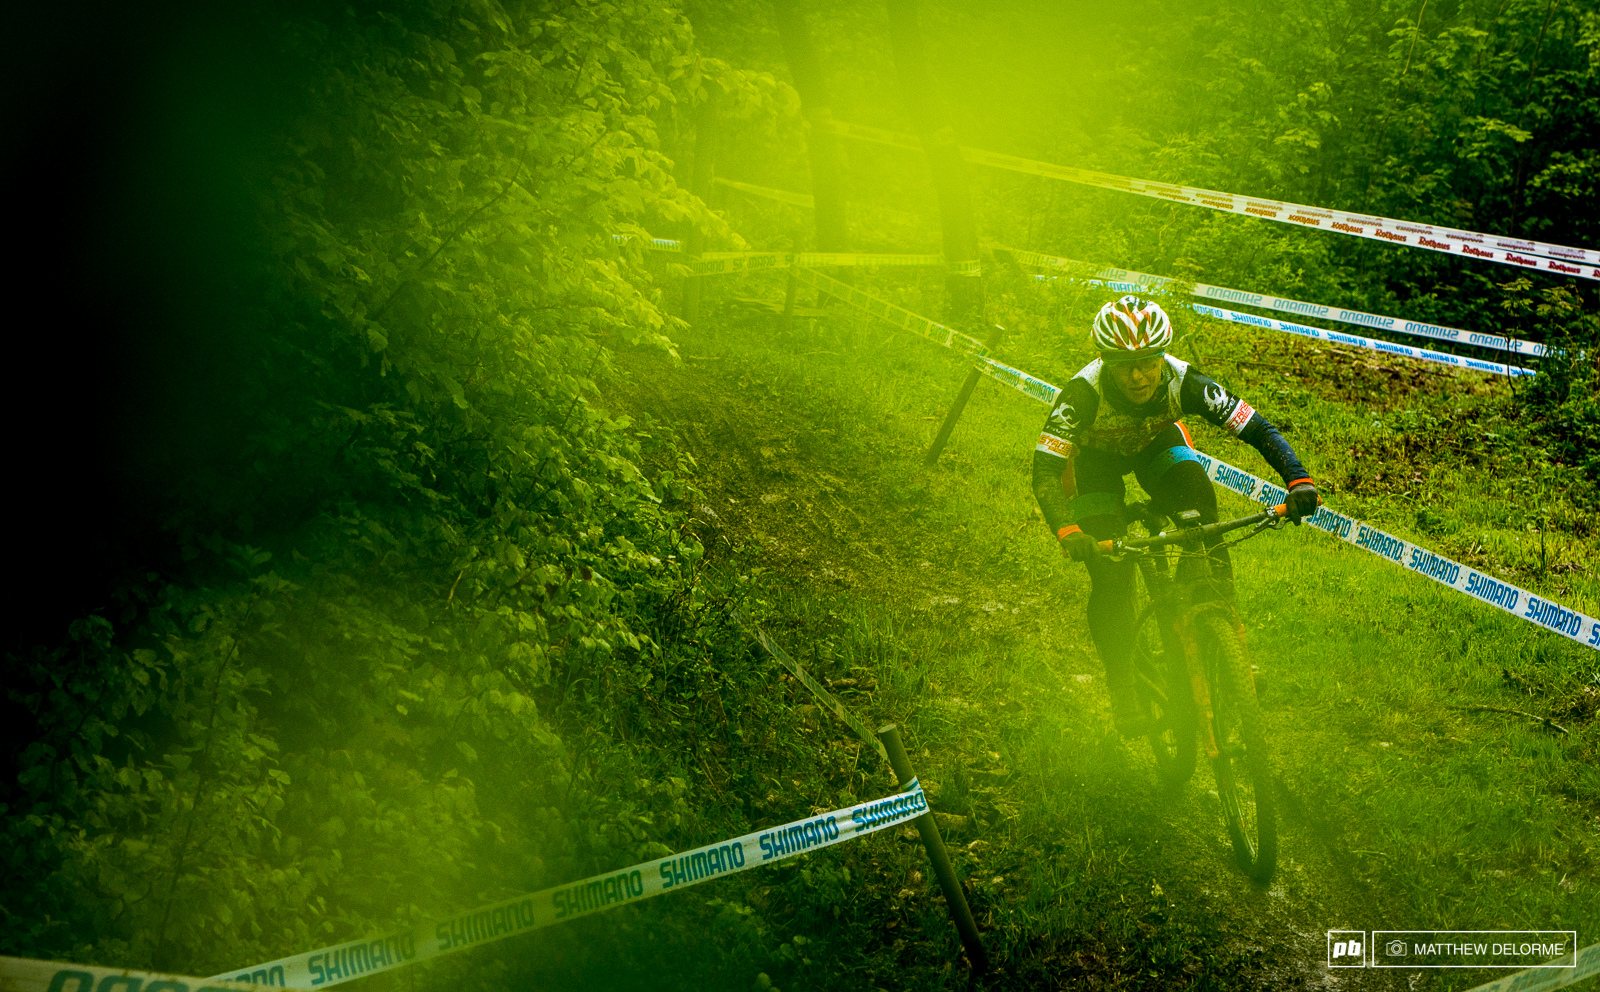 Chloe Woodruff on the fast single track descent during practice.